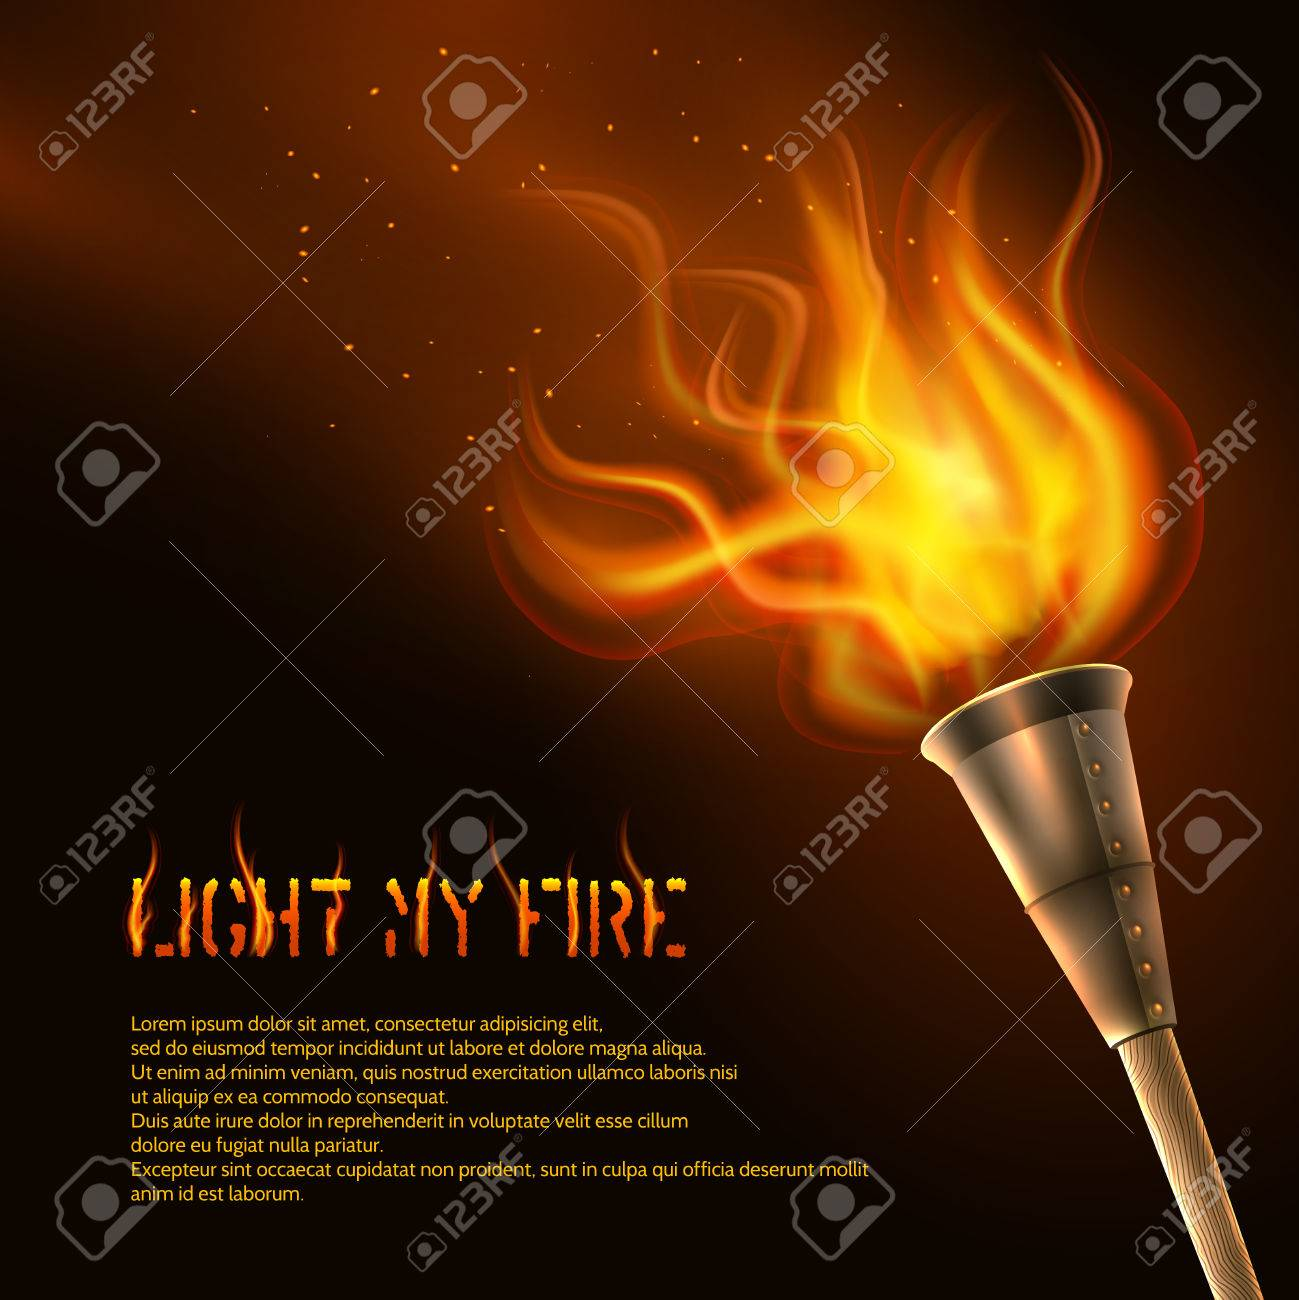 Torch Flame Realistic Background With Light My Fire Text Vector 1299x1300